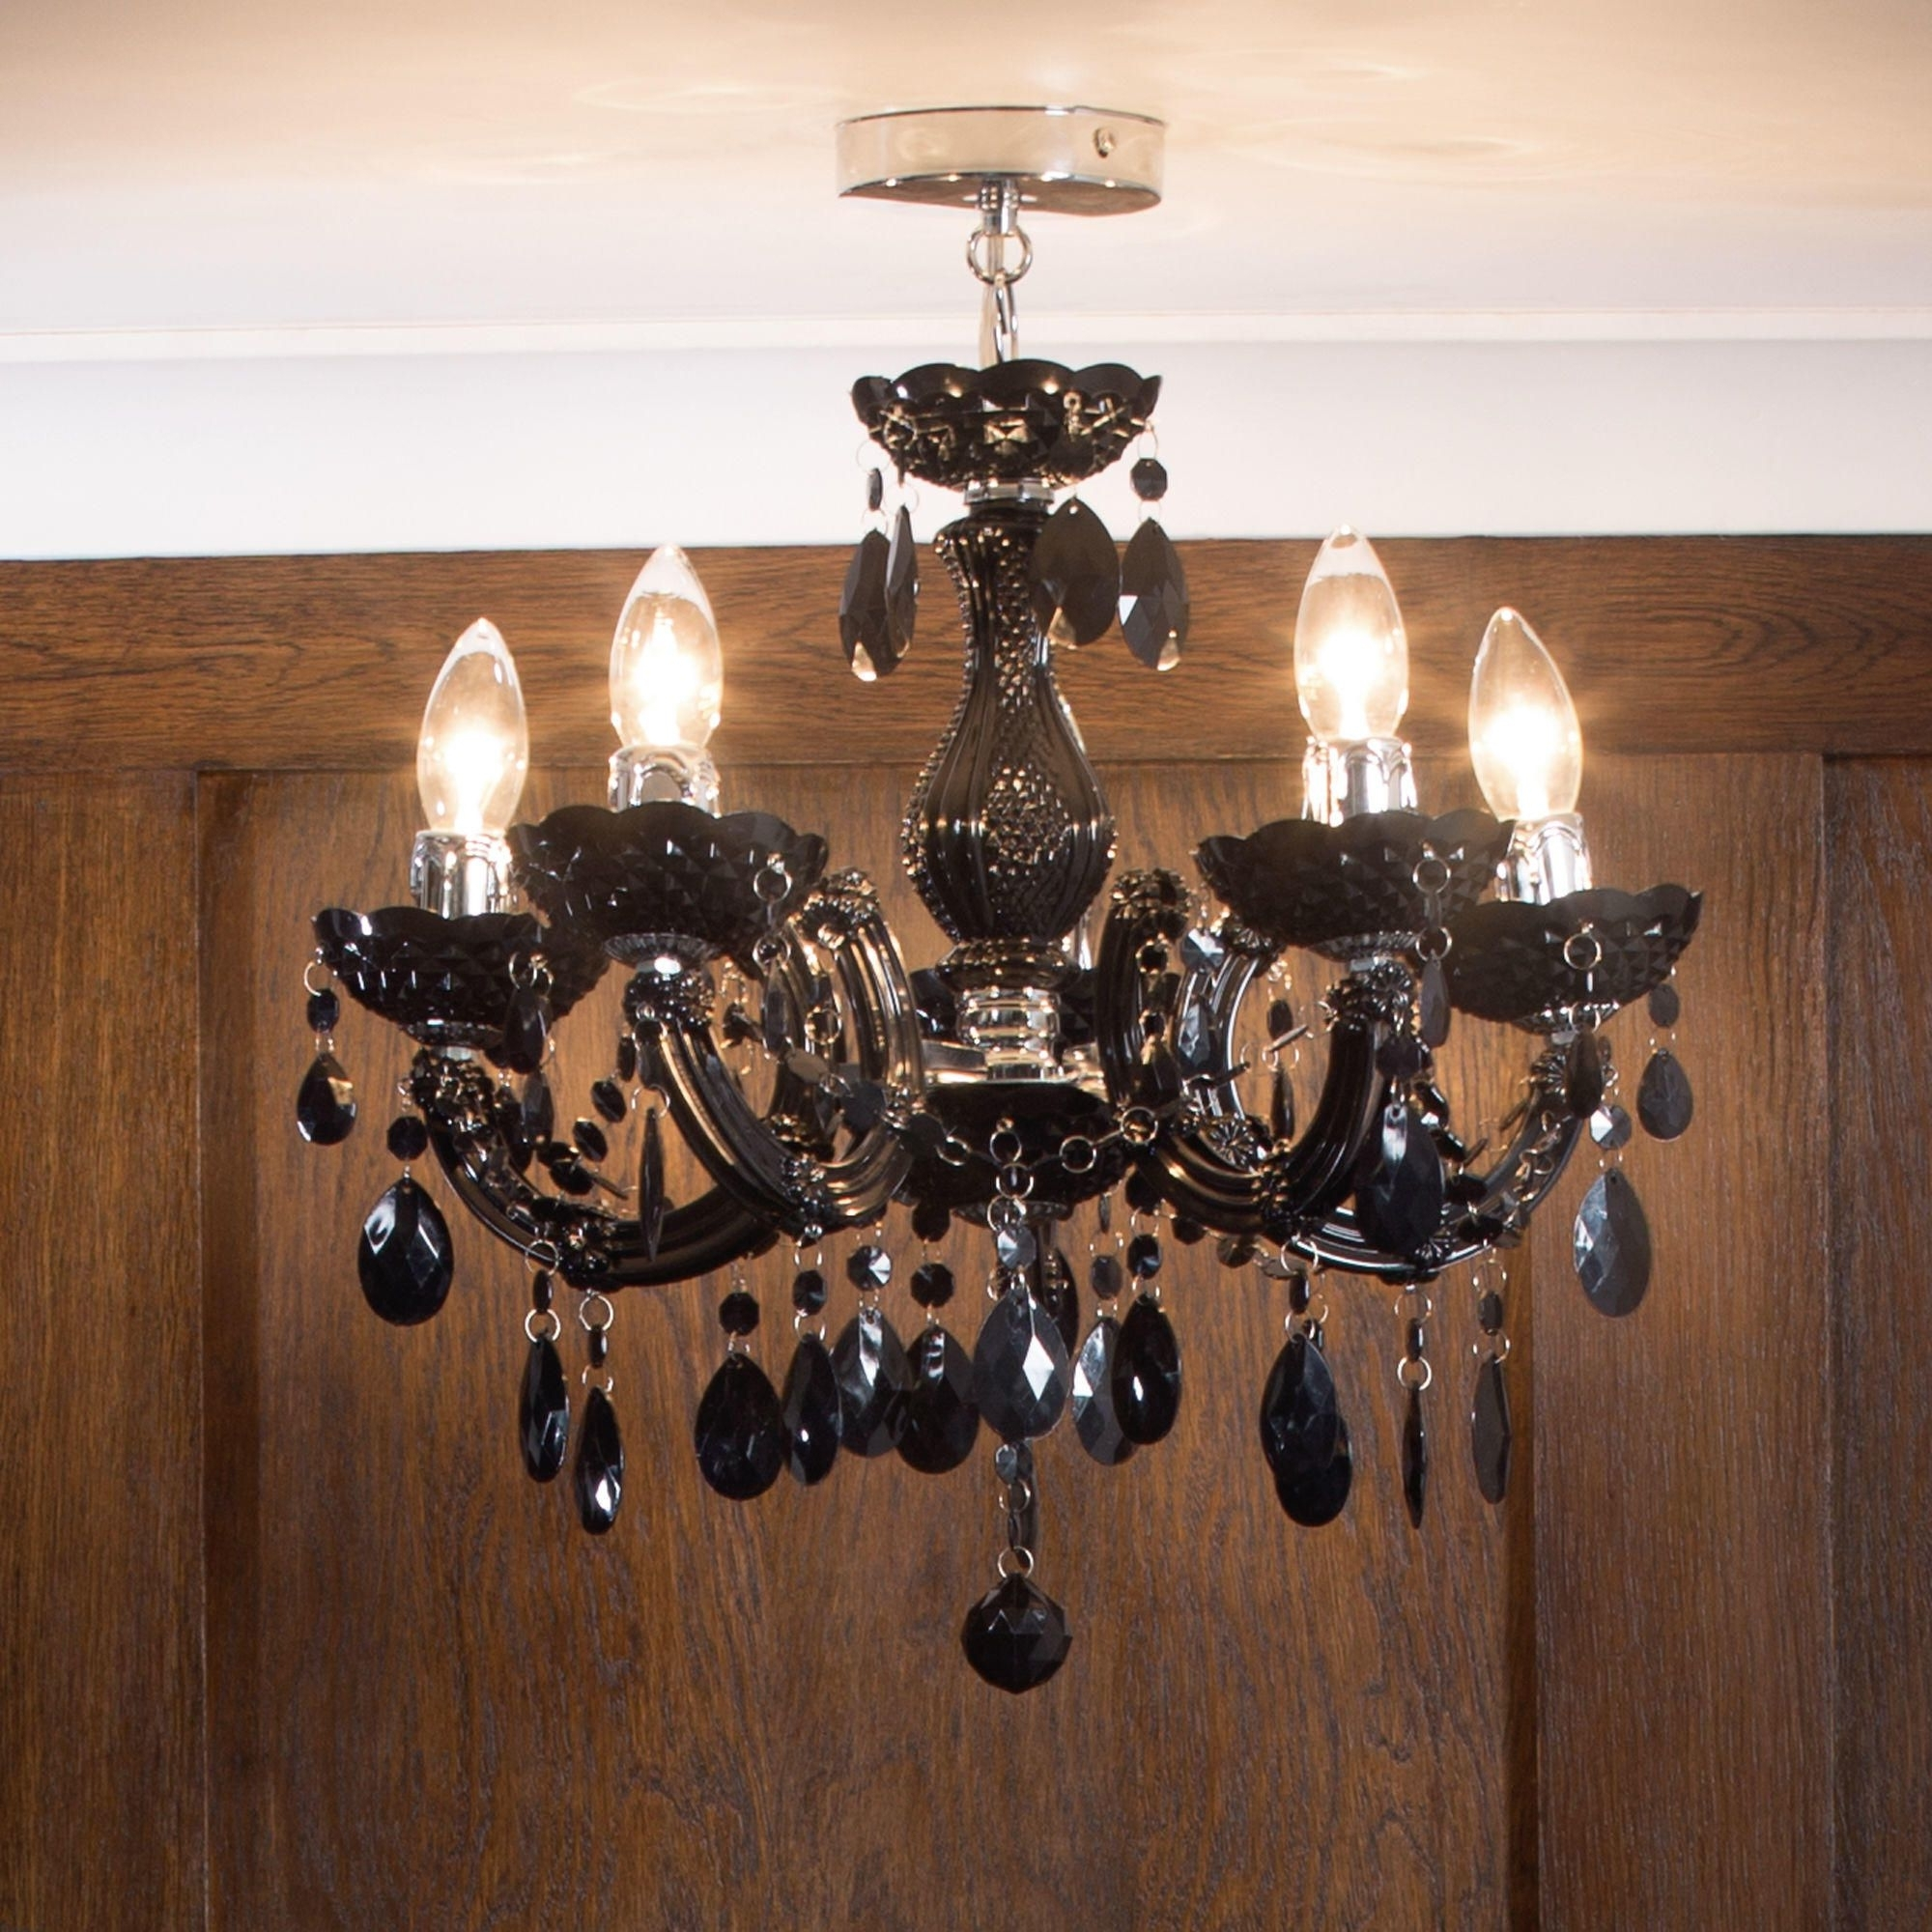 Chandeliers For Low Ceilings Pertaining To Favorite Chandeliers For Low Ceilings – Litecraft (View 3 of 15)